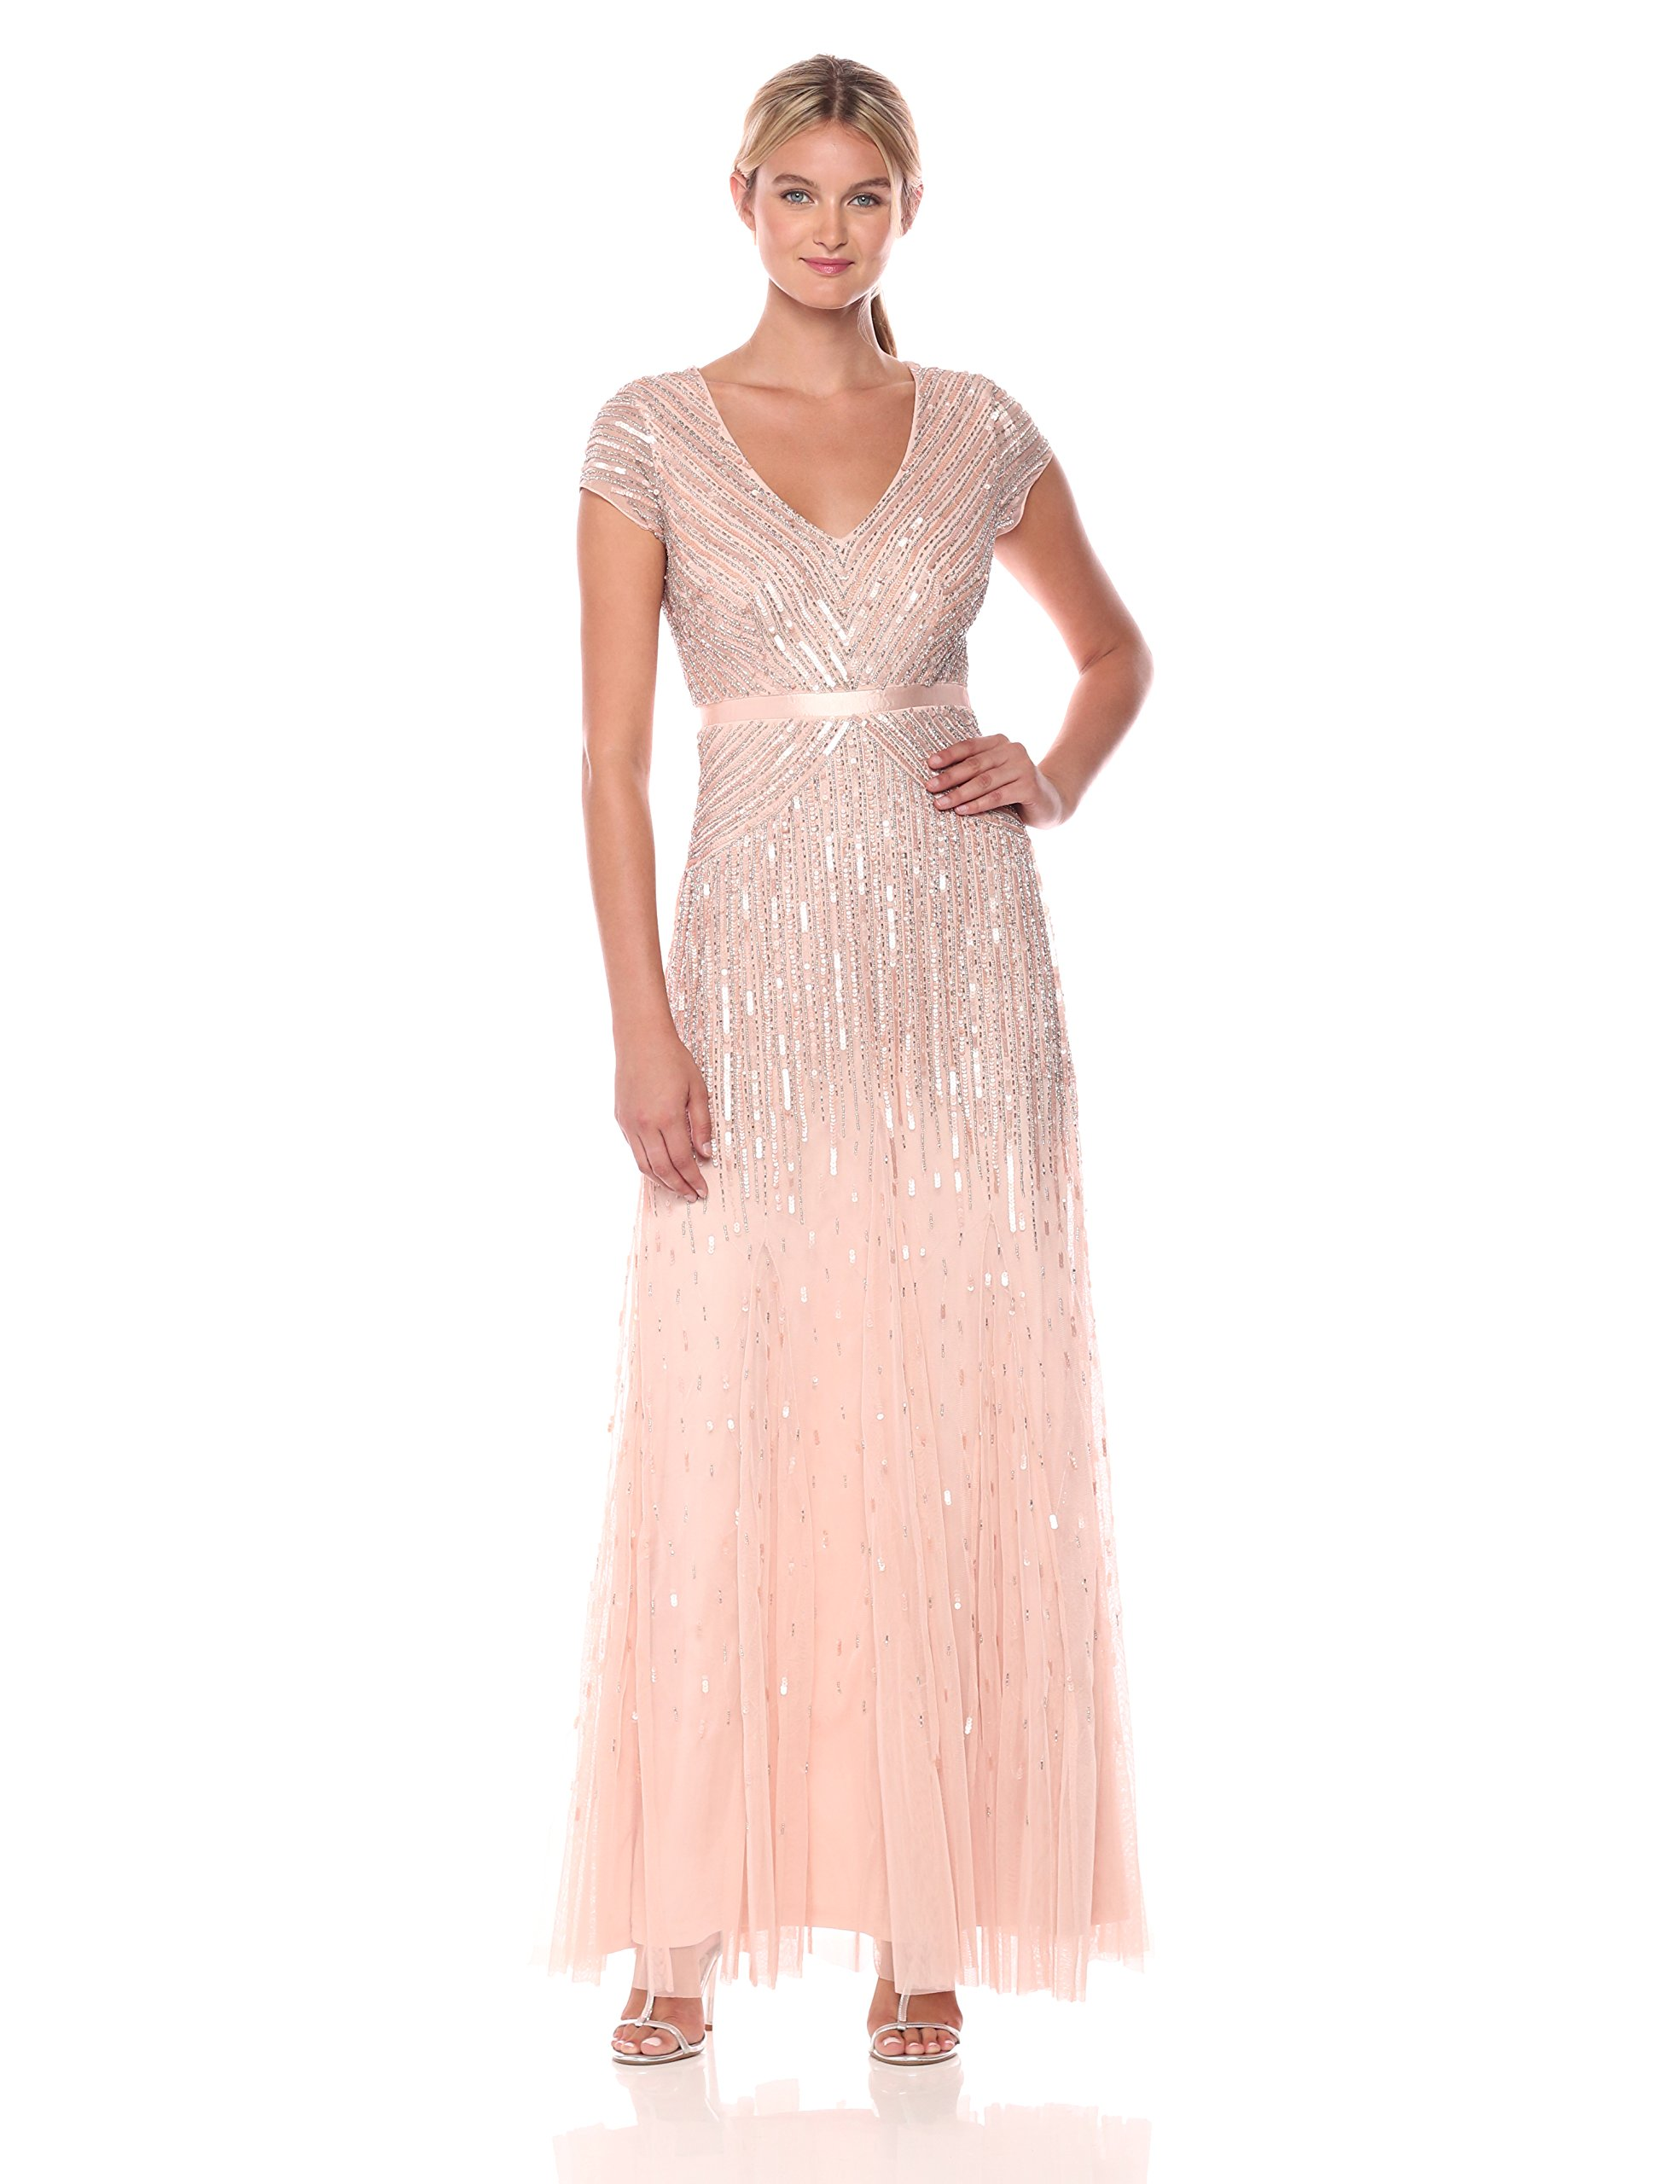 Galleon Adrianna Papell Womens Long Beaded V Neck Dress With Cap